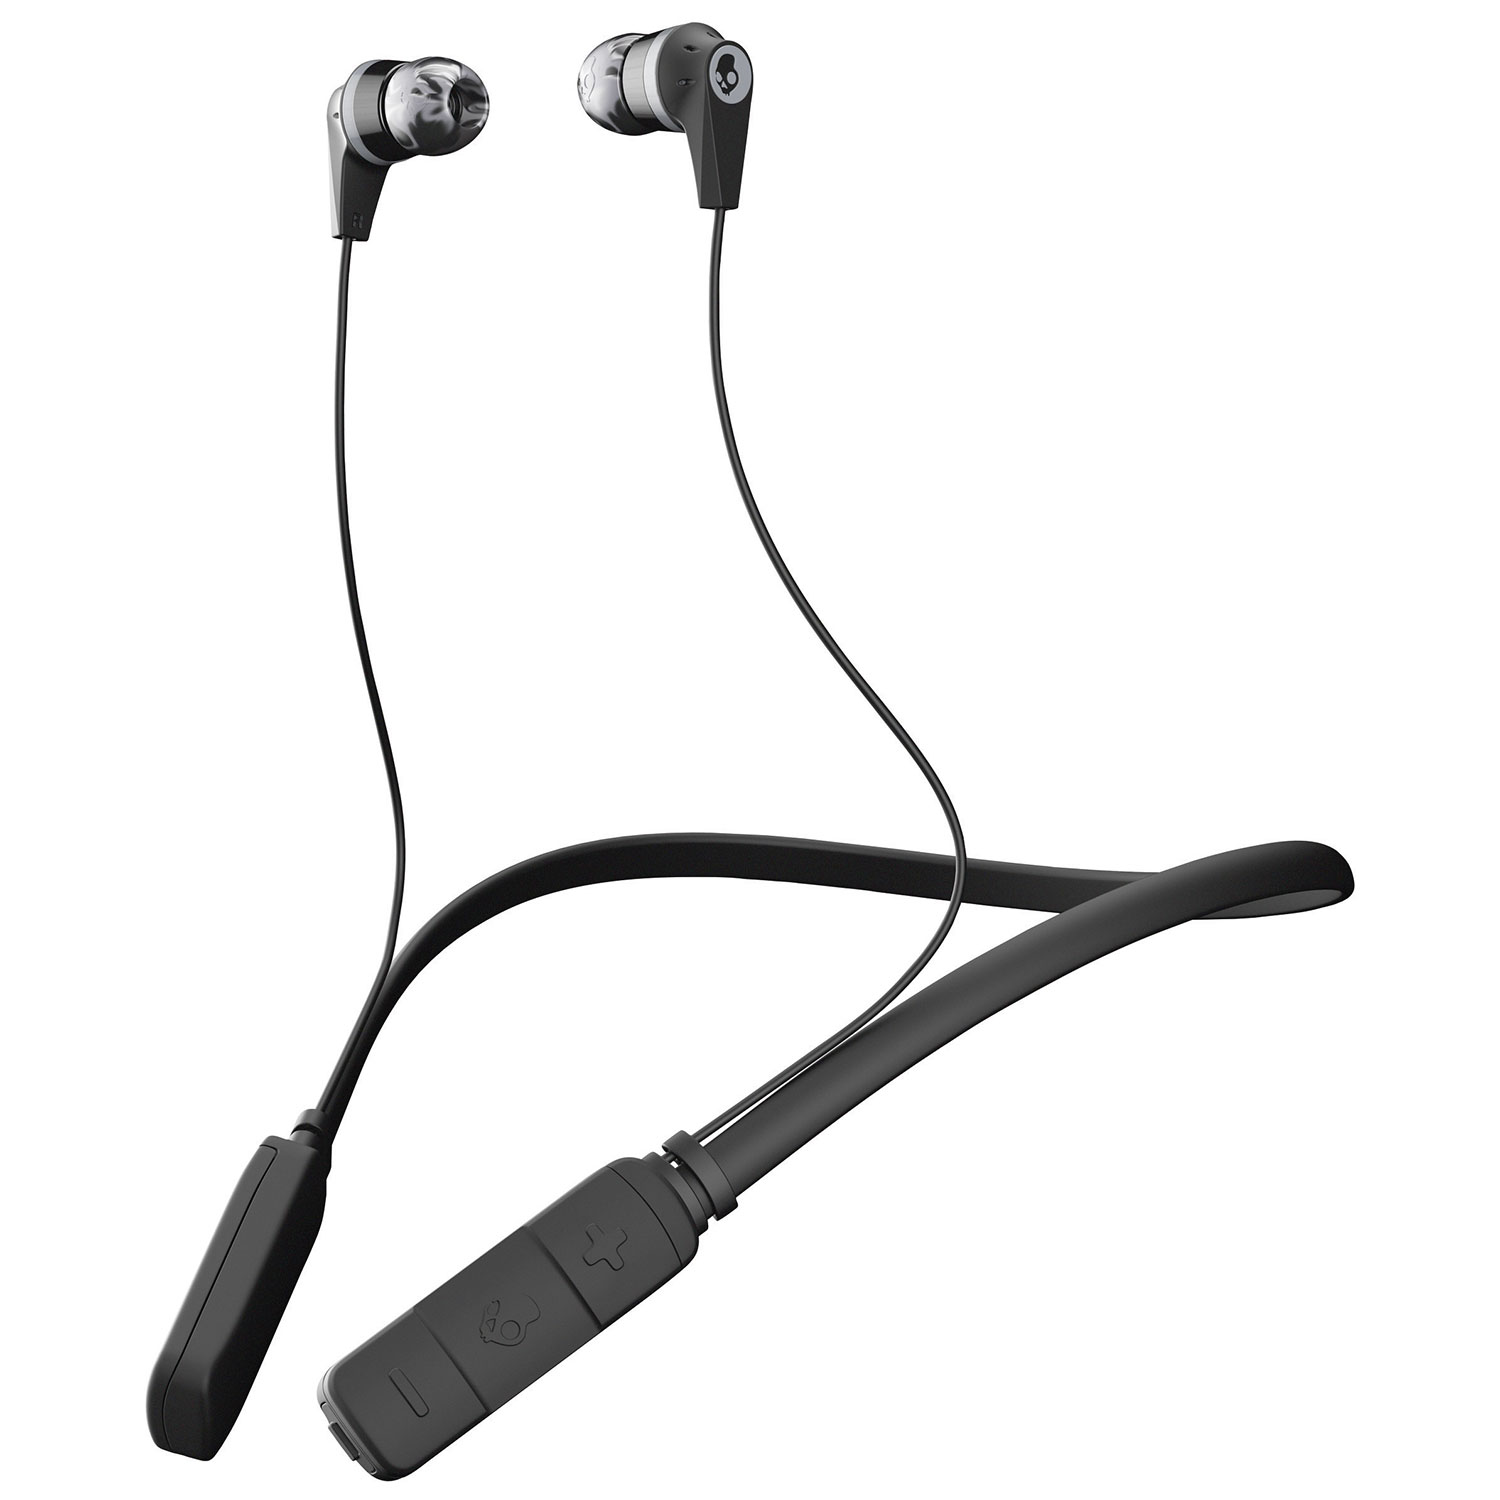 Skullcandy Inkd In Ear Wireless Headphones Black Grey Earbuds Xiaomi Earphone Earpods Half With Mic Best Buy Canada